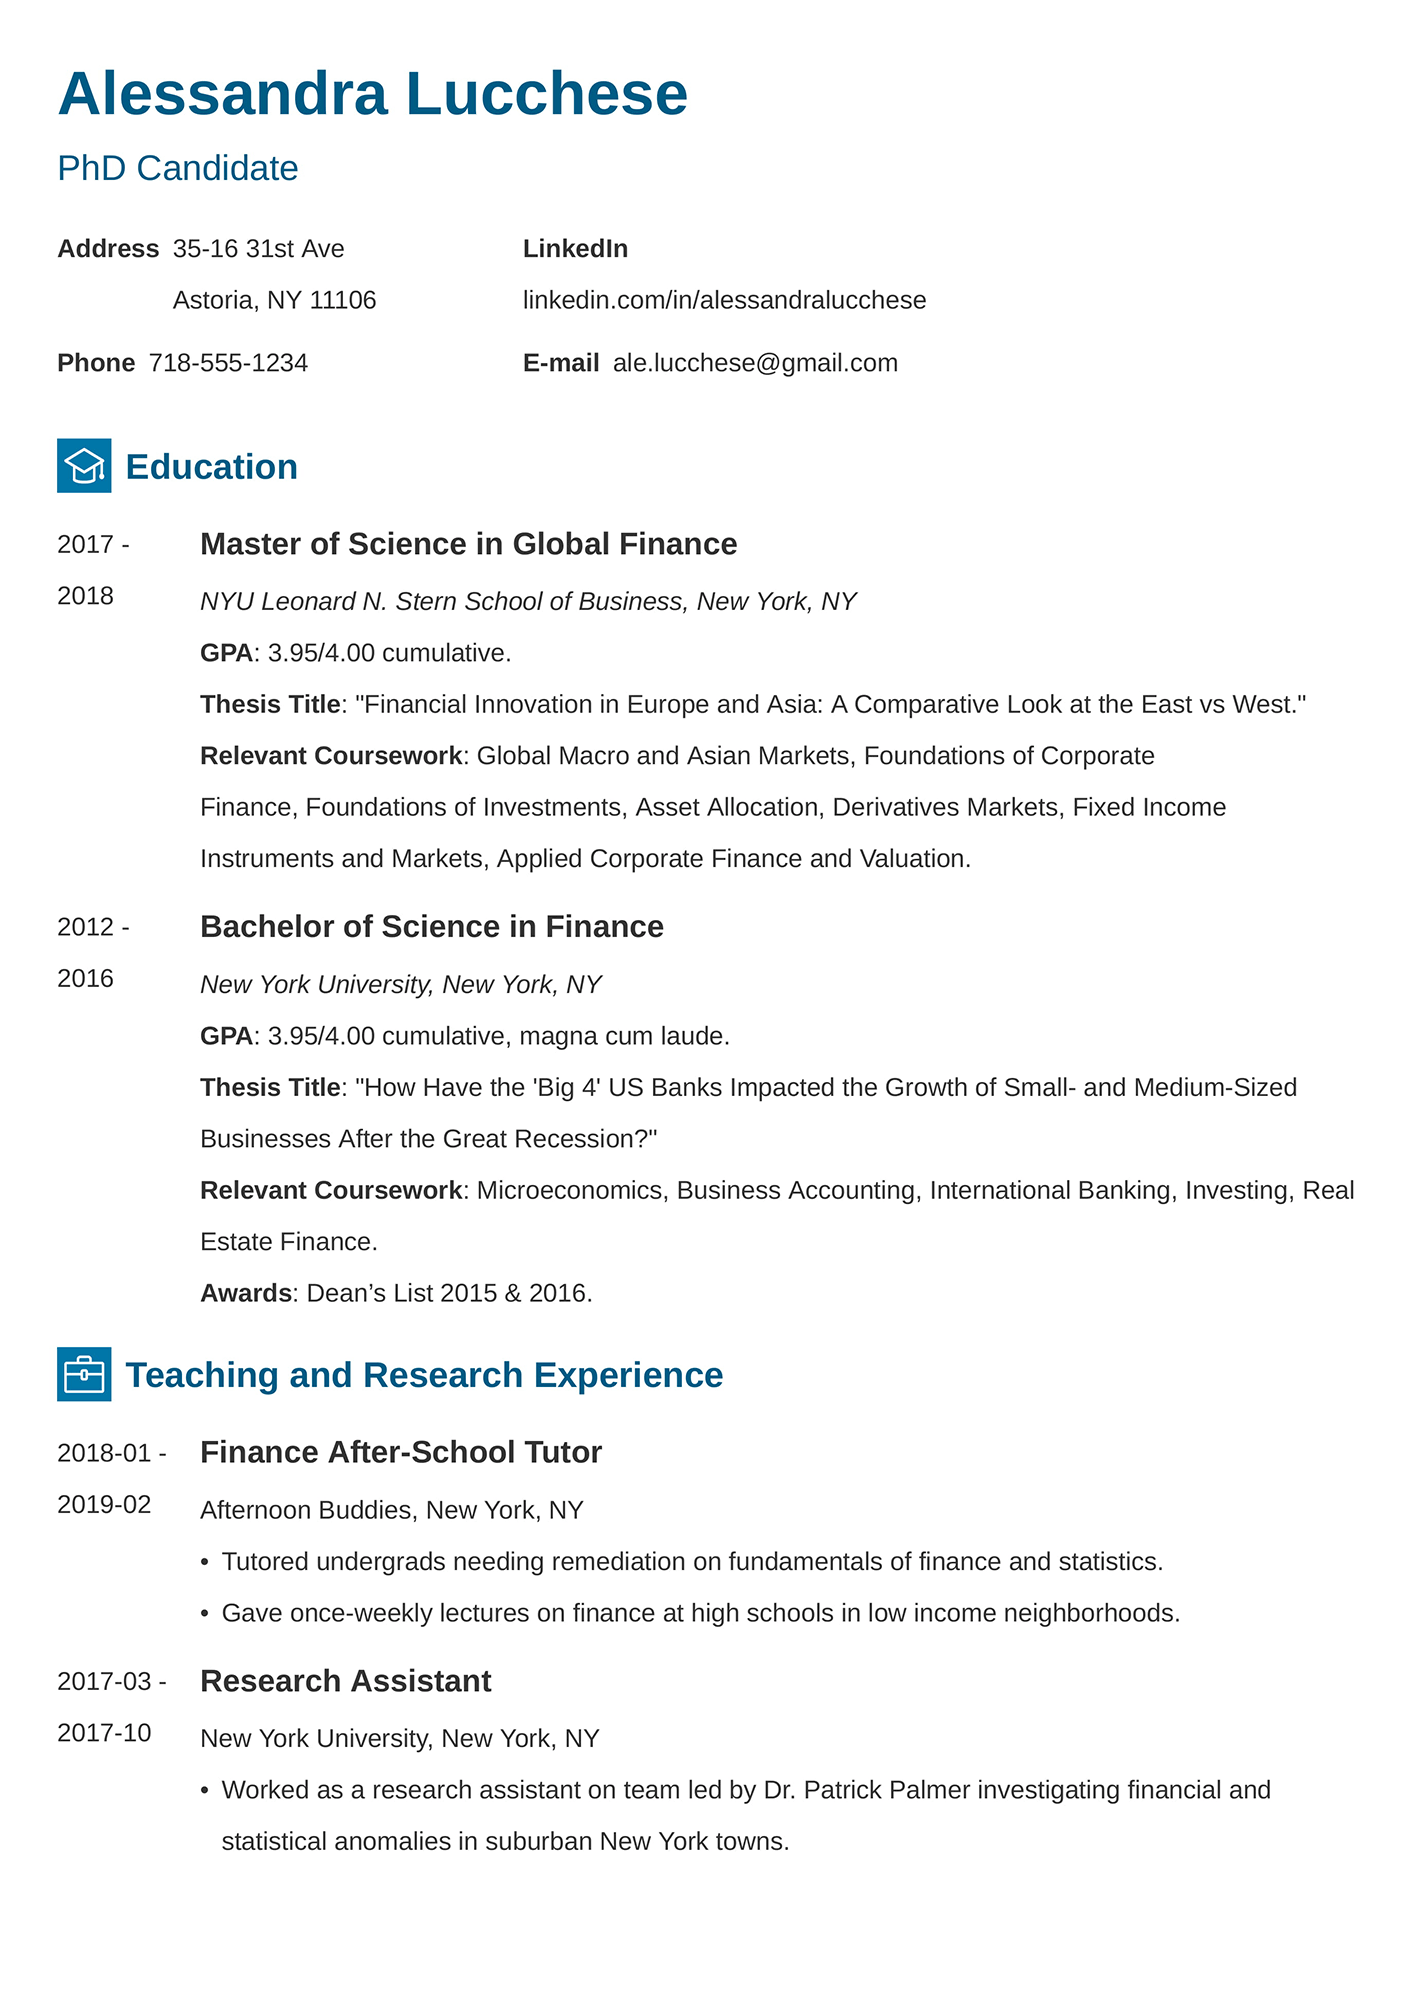 Example of an graduate school CV